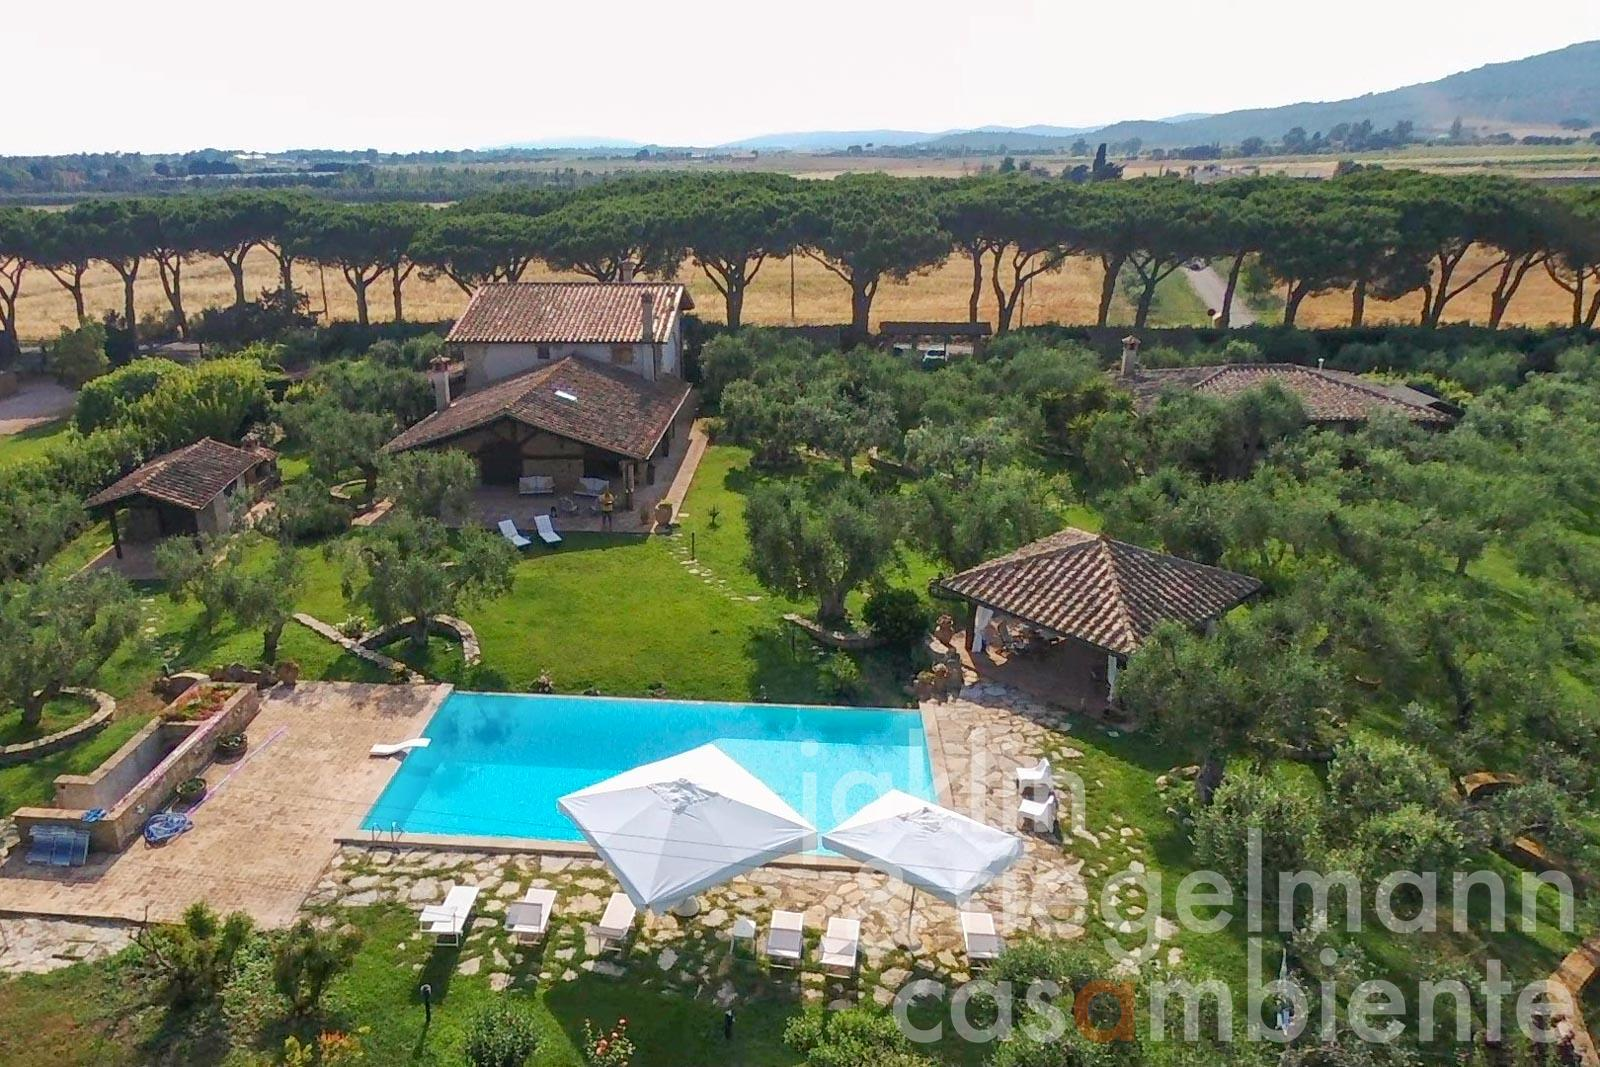 Tuscany mansion with annex and pool 1,5 km from the sea near Capalbio